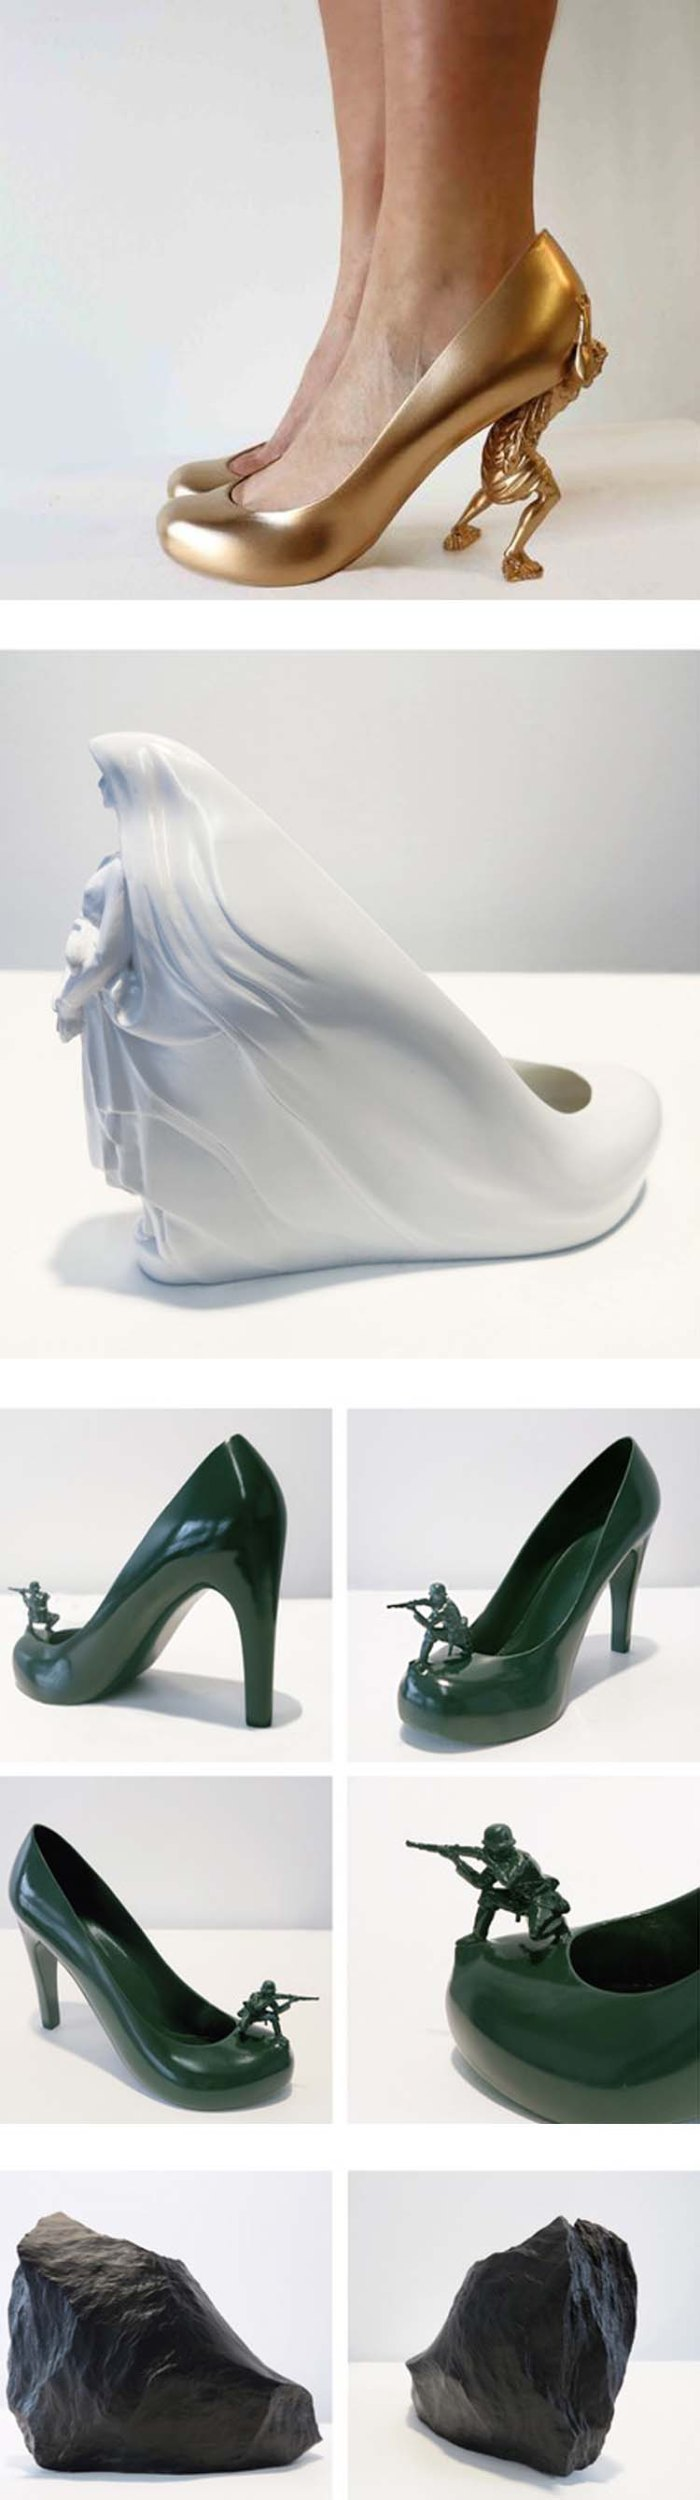 12 Shoes for 12 Lovers by Sebastian Errazuriz, fun shoe designs for Basel Miami 2013,  cool shoes